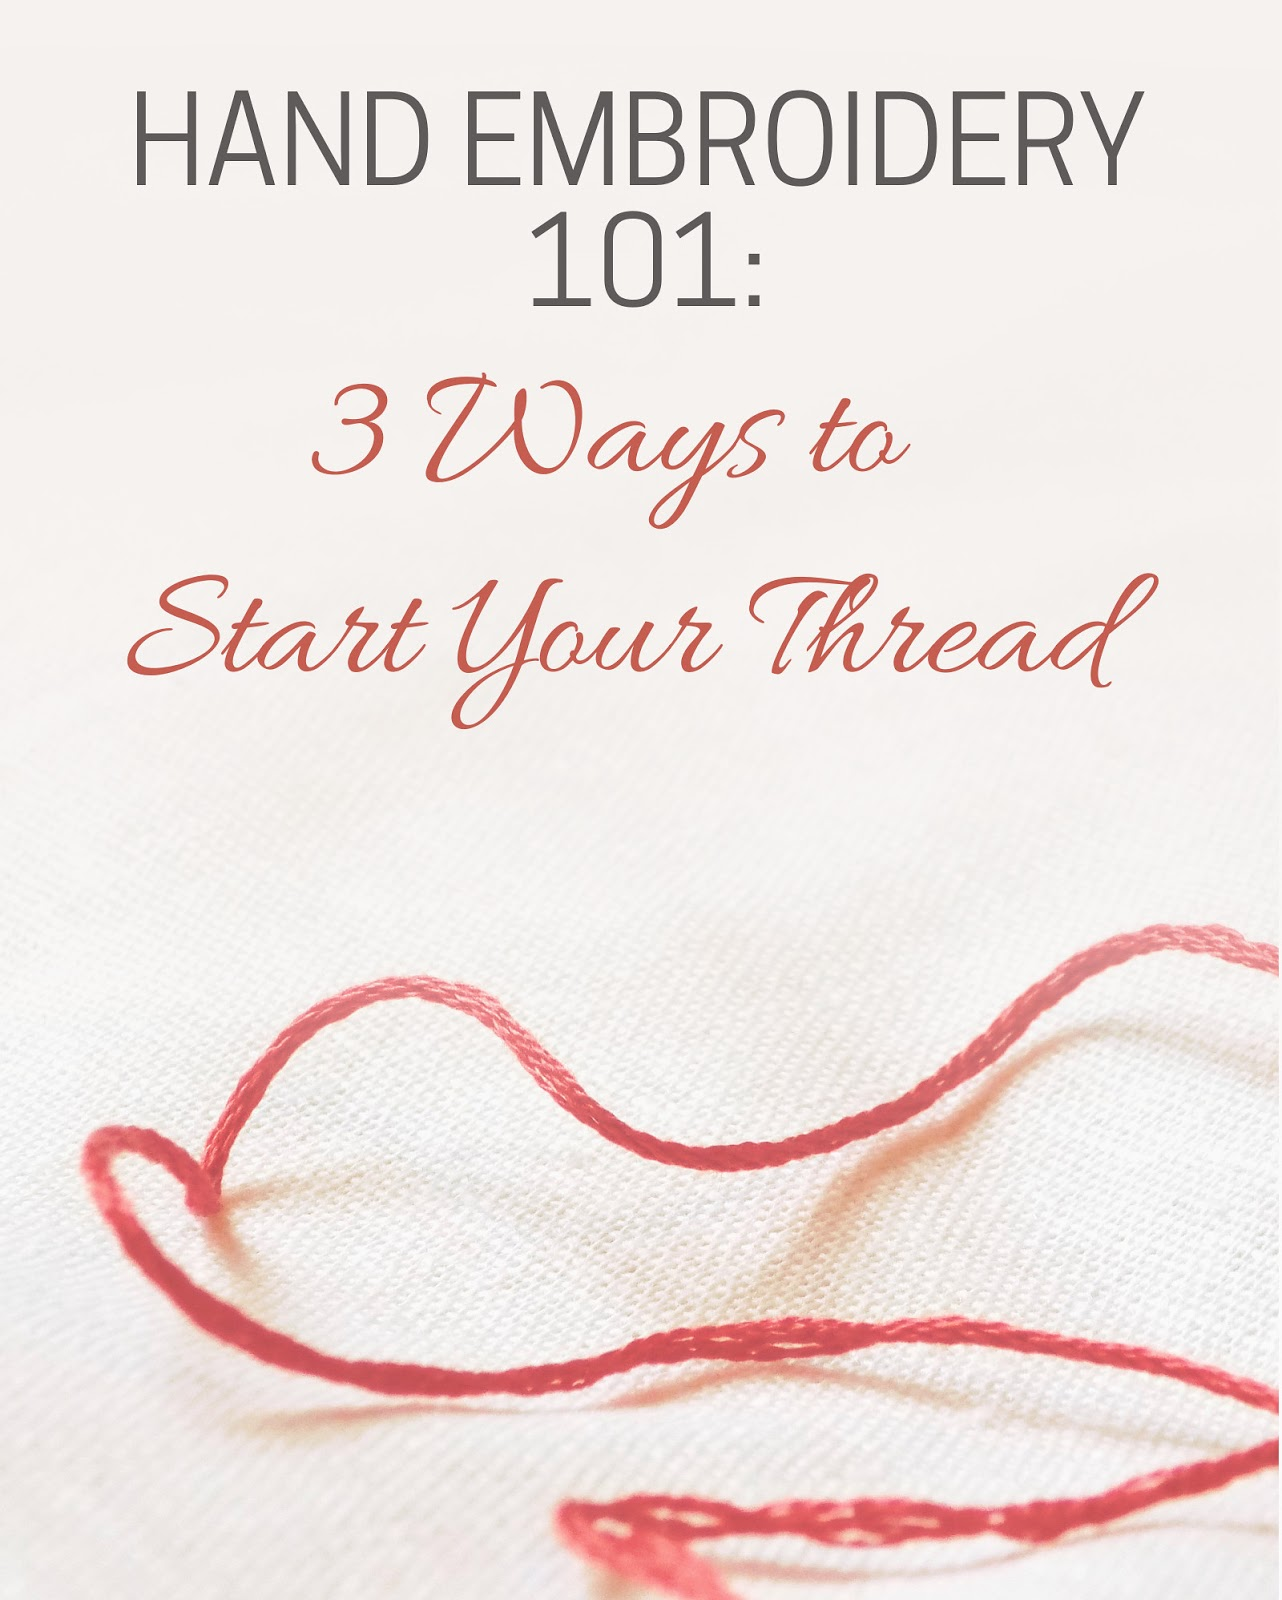 Hand Embroidery 101 3 Ways To Start Your Thread Stitch Floral